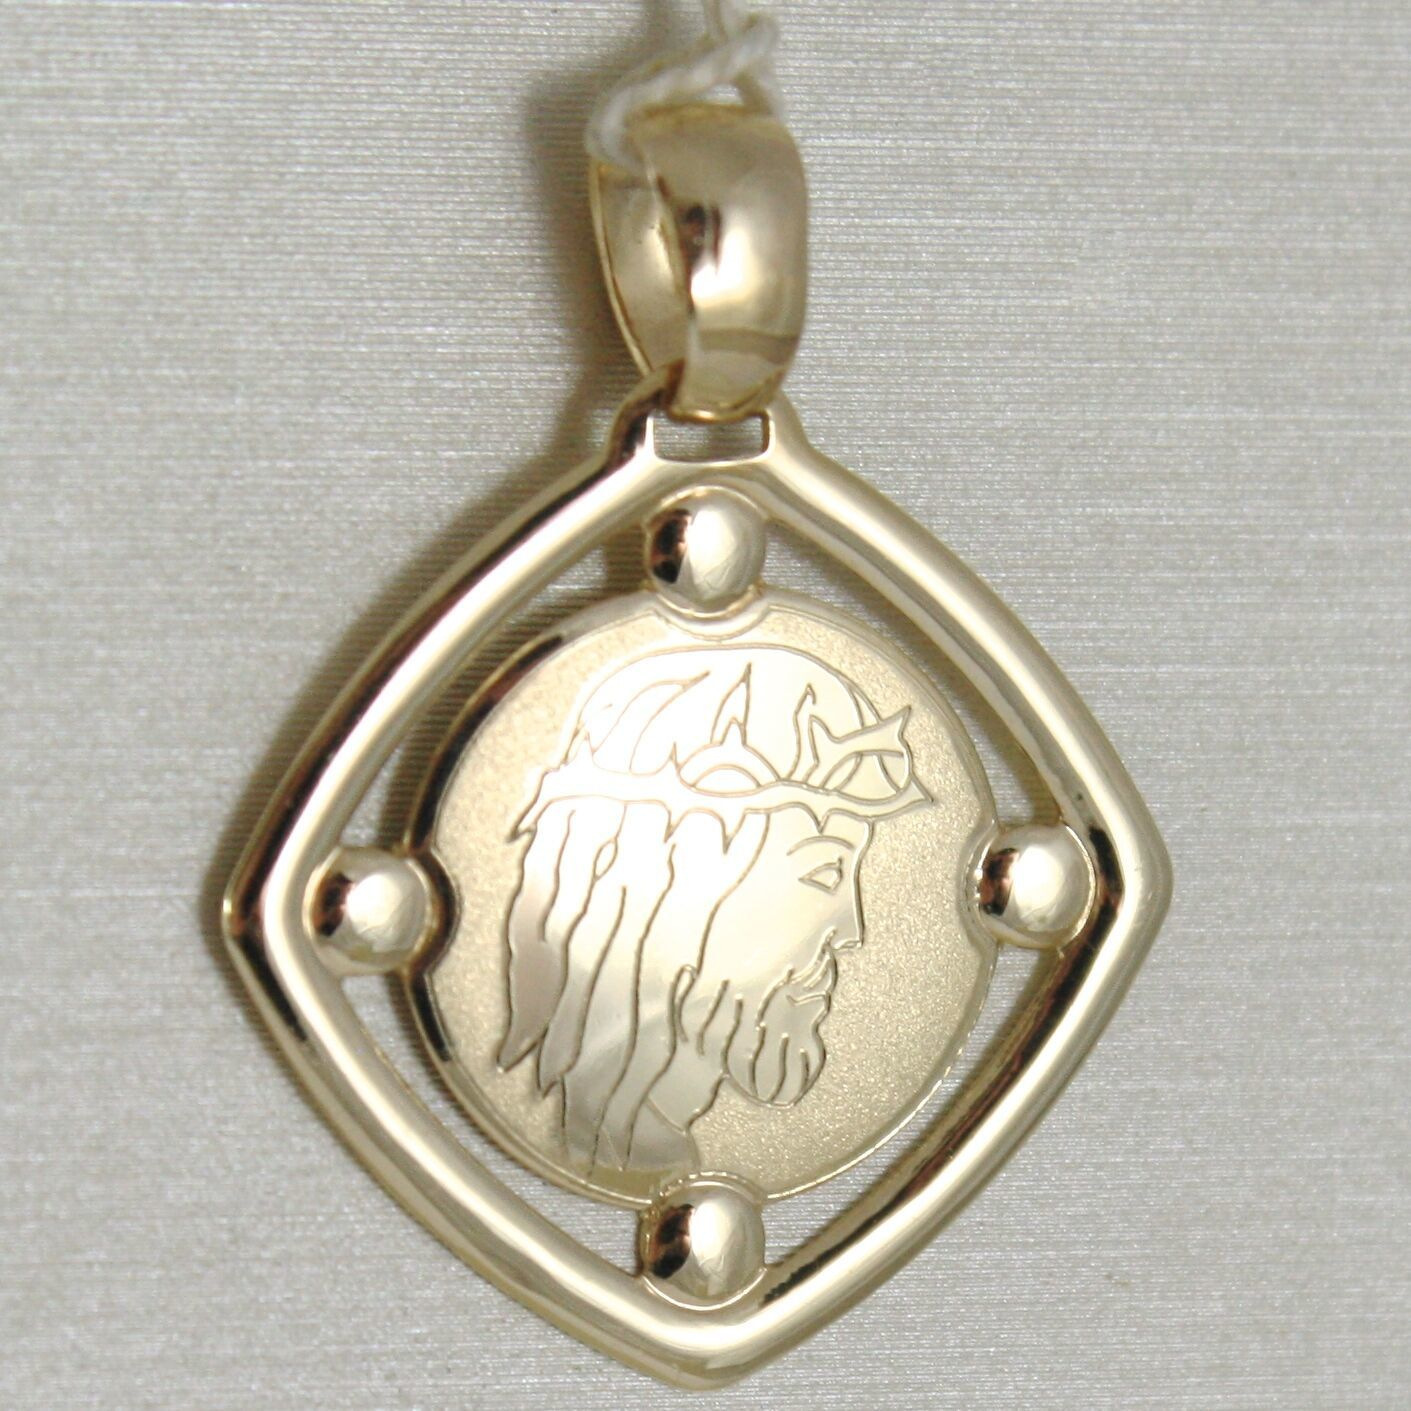 Pendant Medal Yellow Gold 375 9K, Face Christ, Rhombus, Satin, Made IN Italy